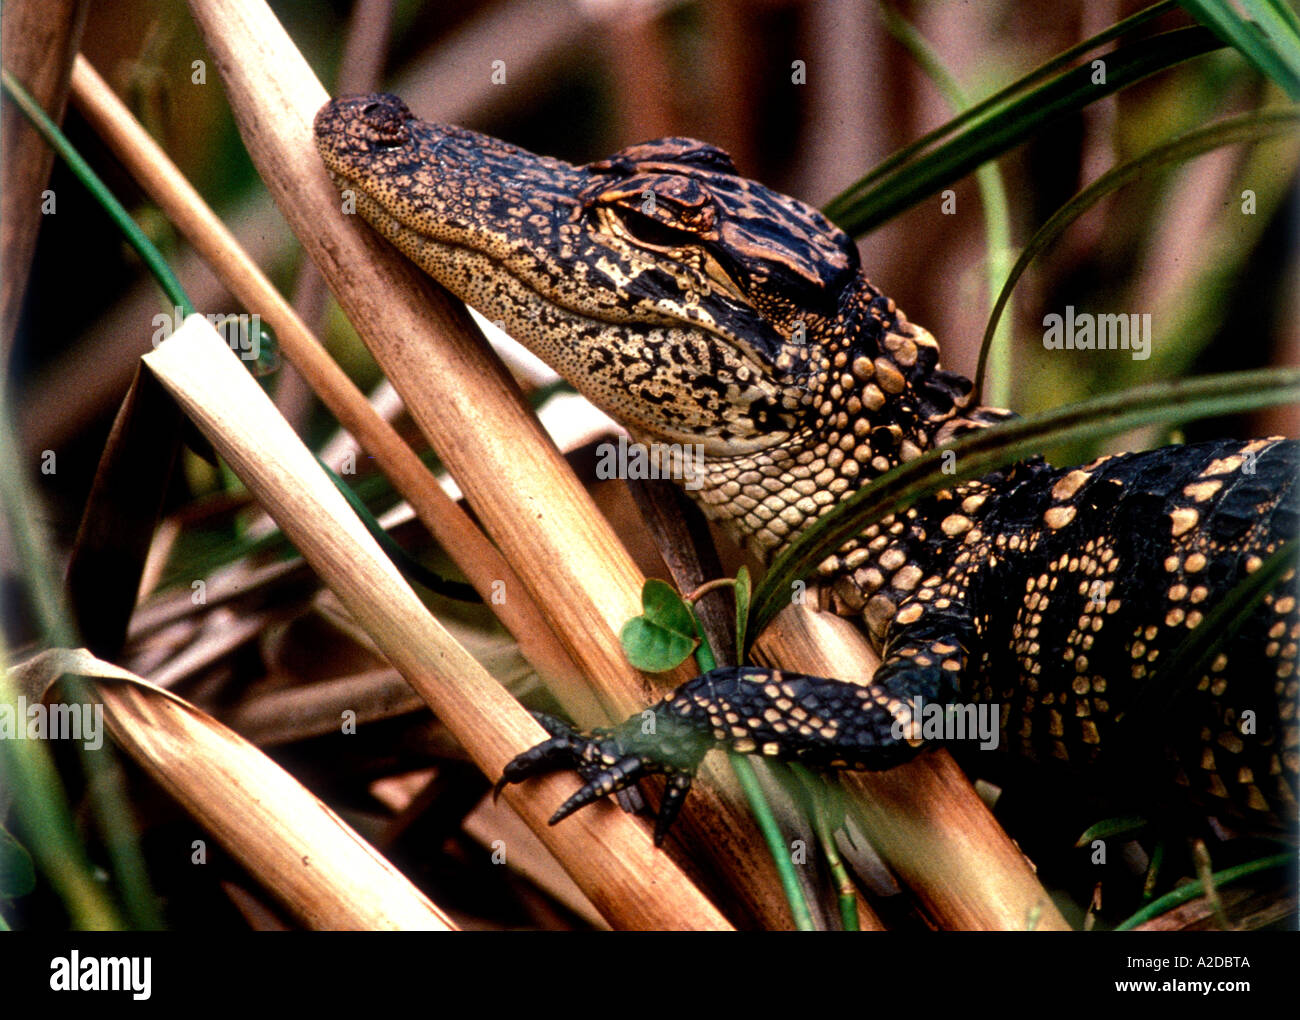 RA-3   RESTING YOUNG ALLIGATOR Stock Photo